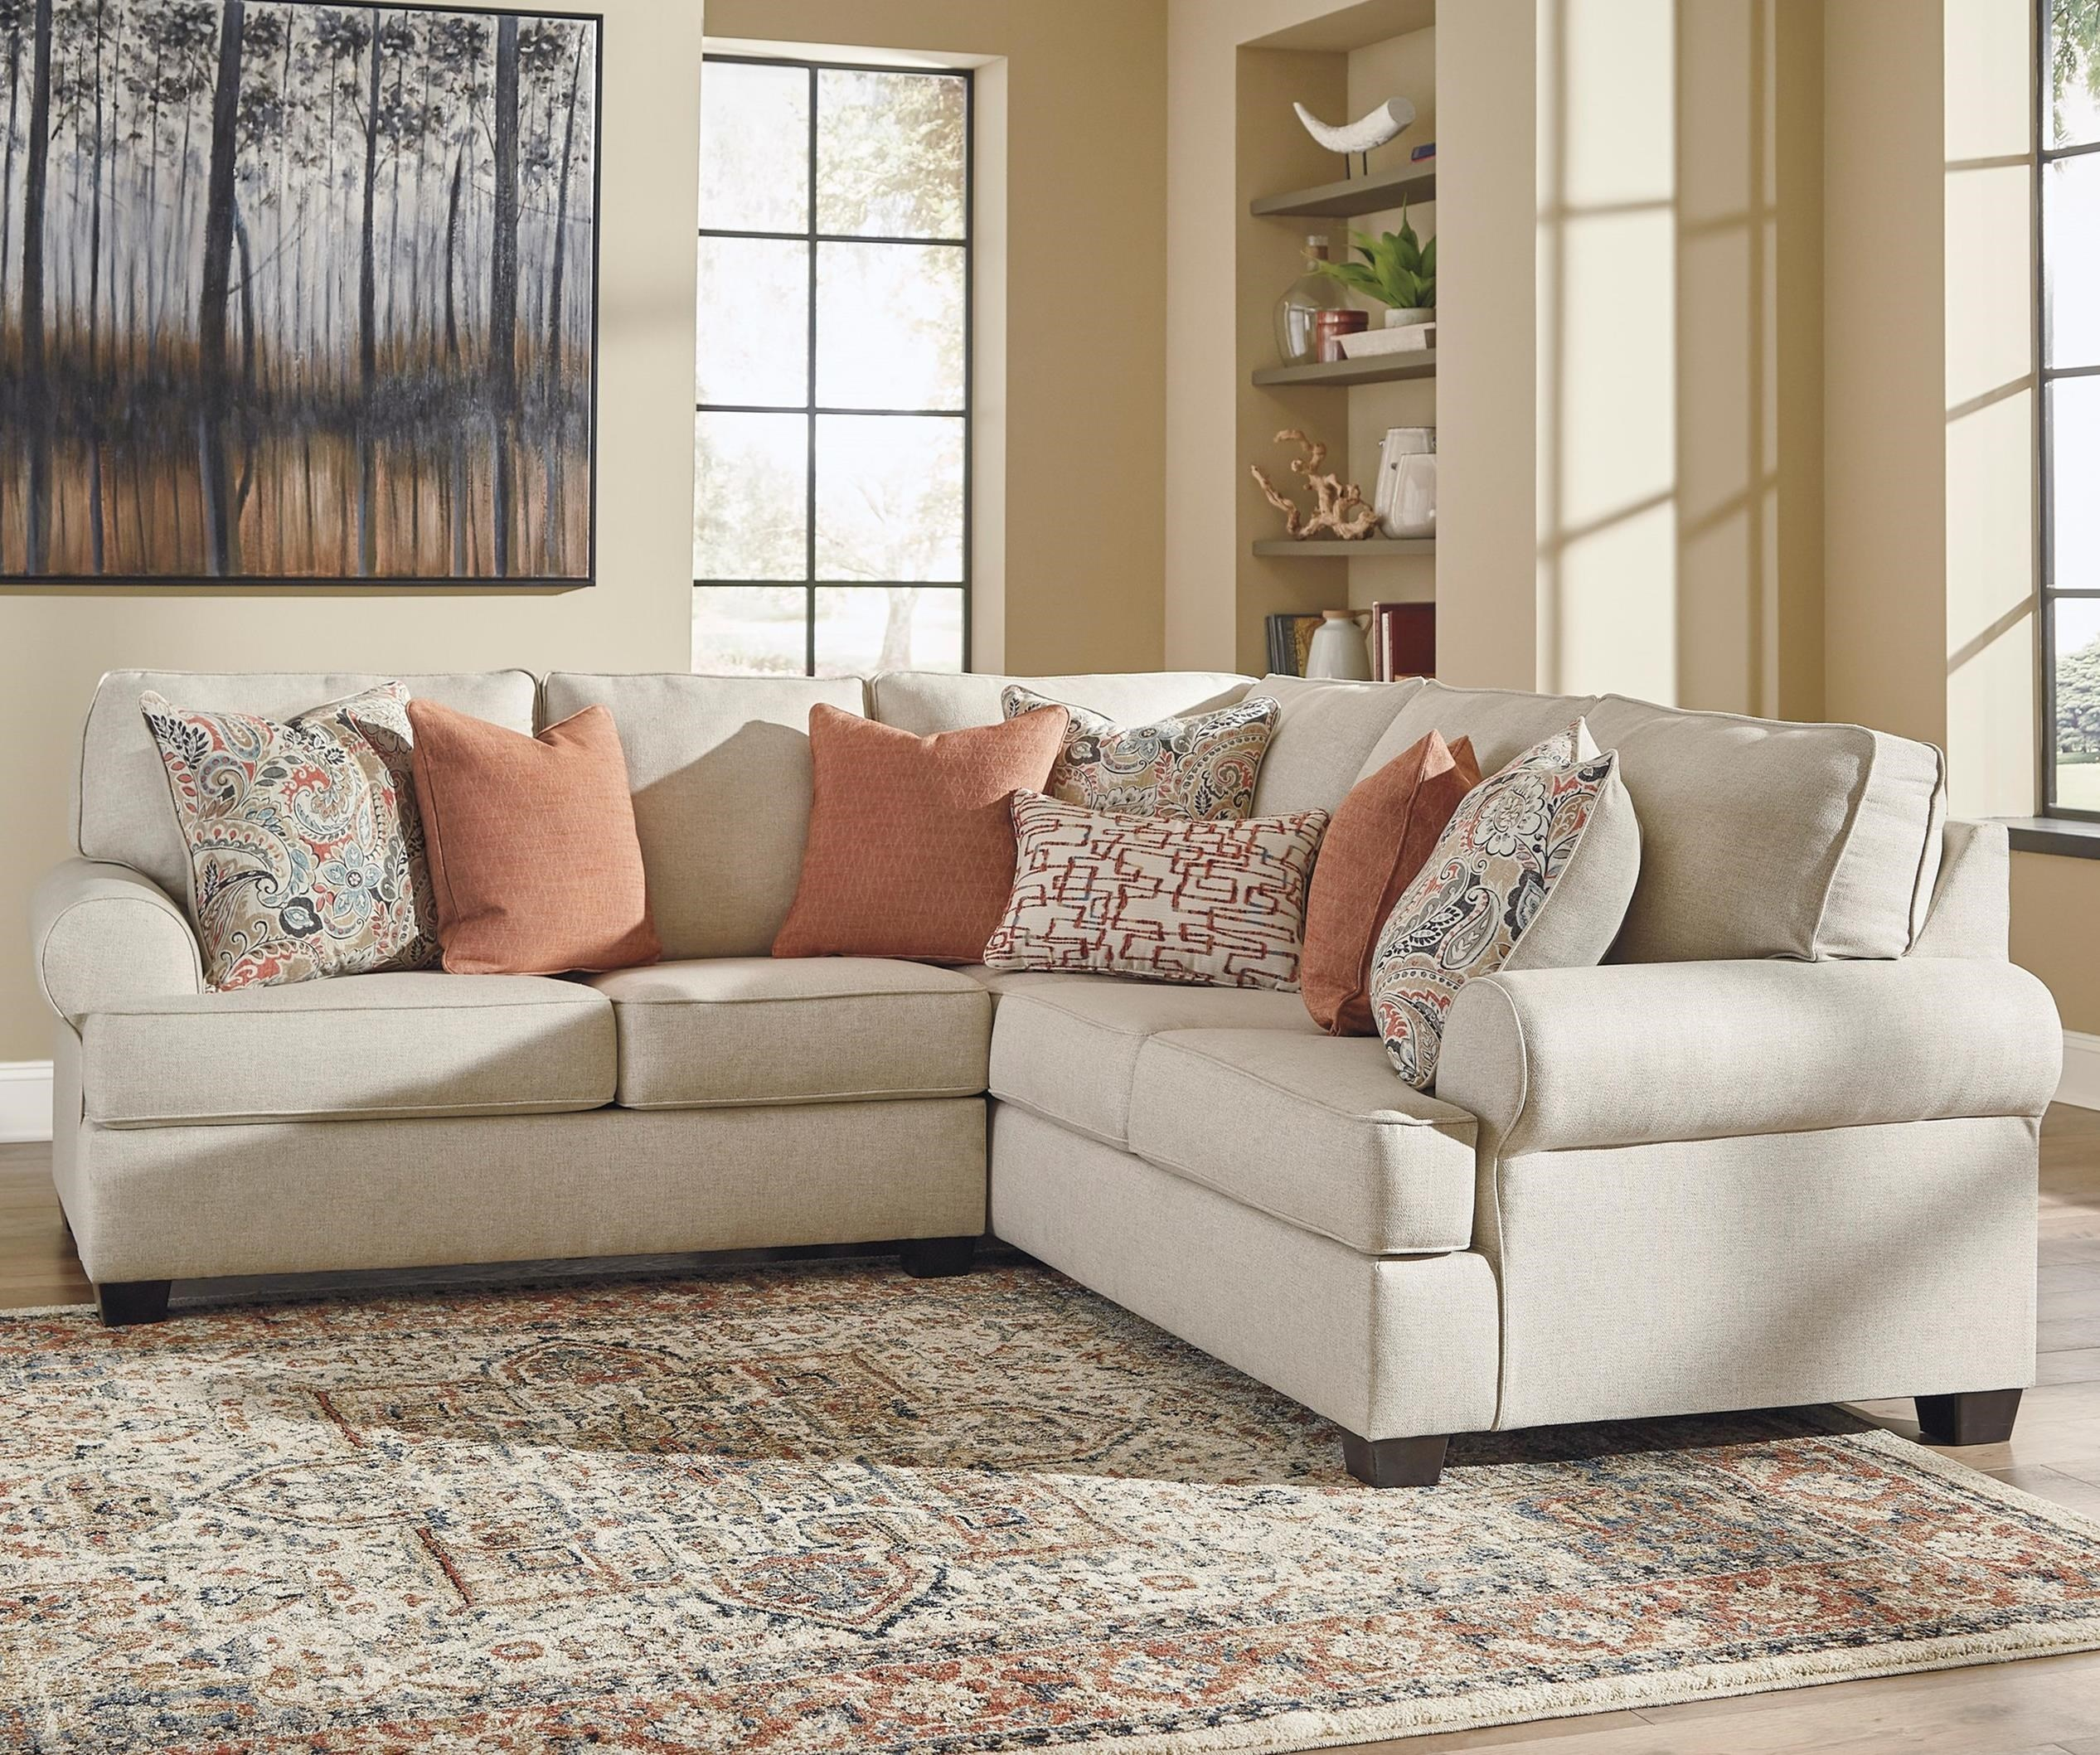 Amici 2-Piece Corner Sectional by Signature Design by Ashley at Catalog Outlet